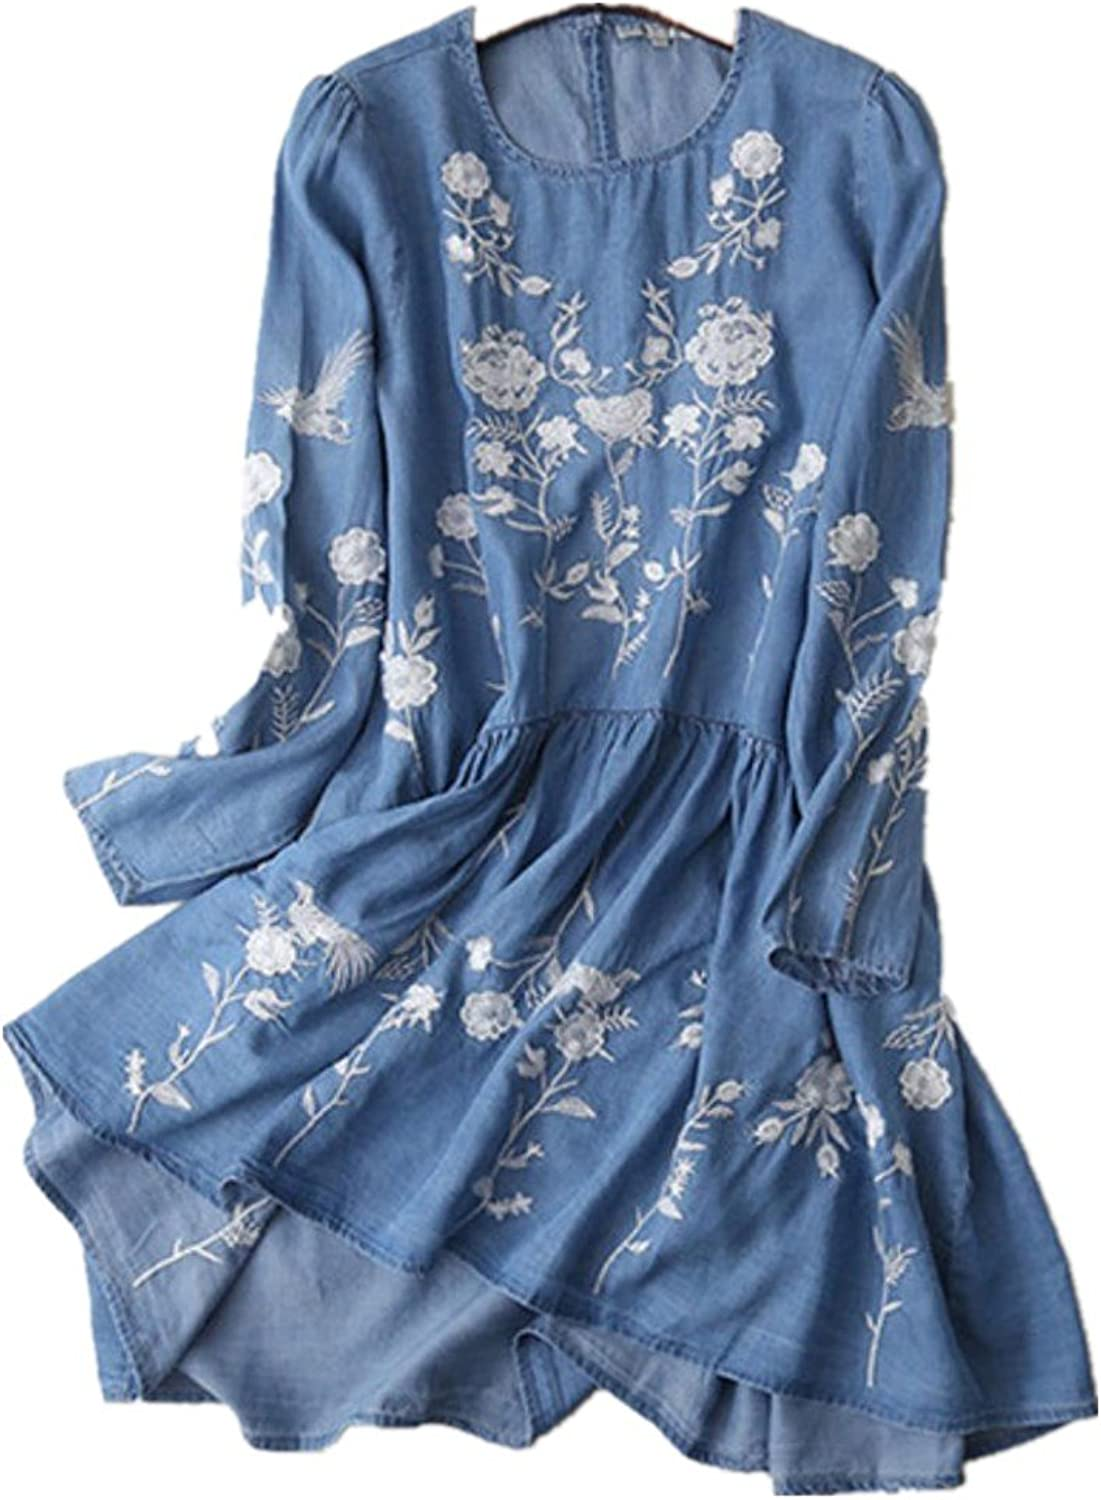 QZZNcUVa Spring Summer Women Long Sleeve Vintage Ethnic Floral Embroidery Jeans Dress Casual Jeans Robe